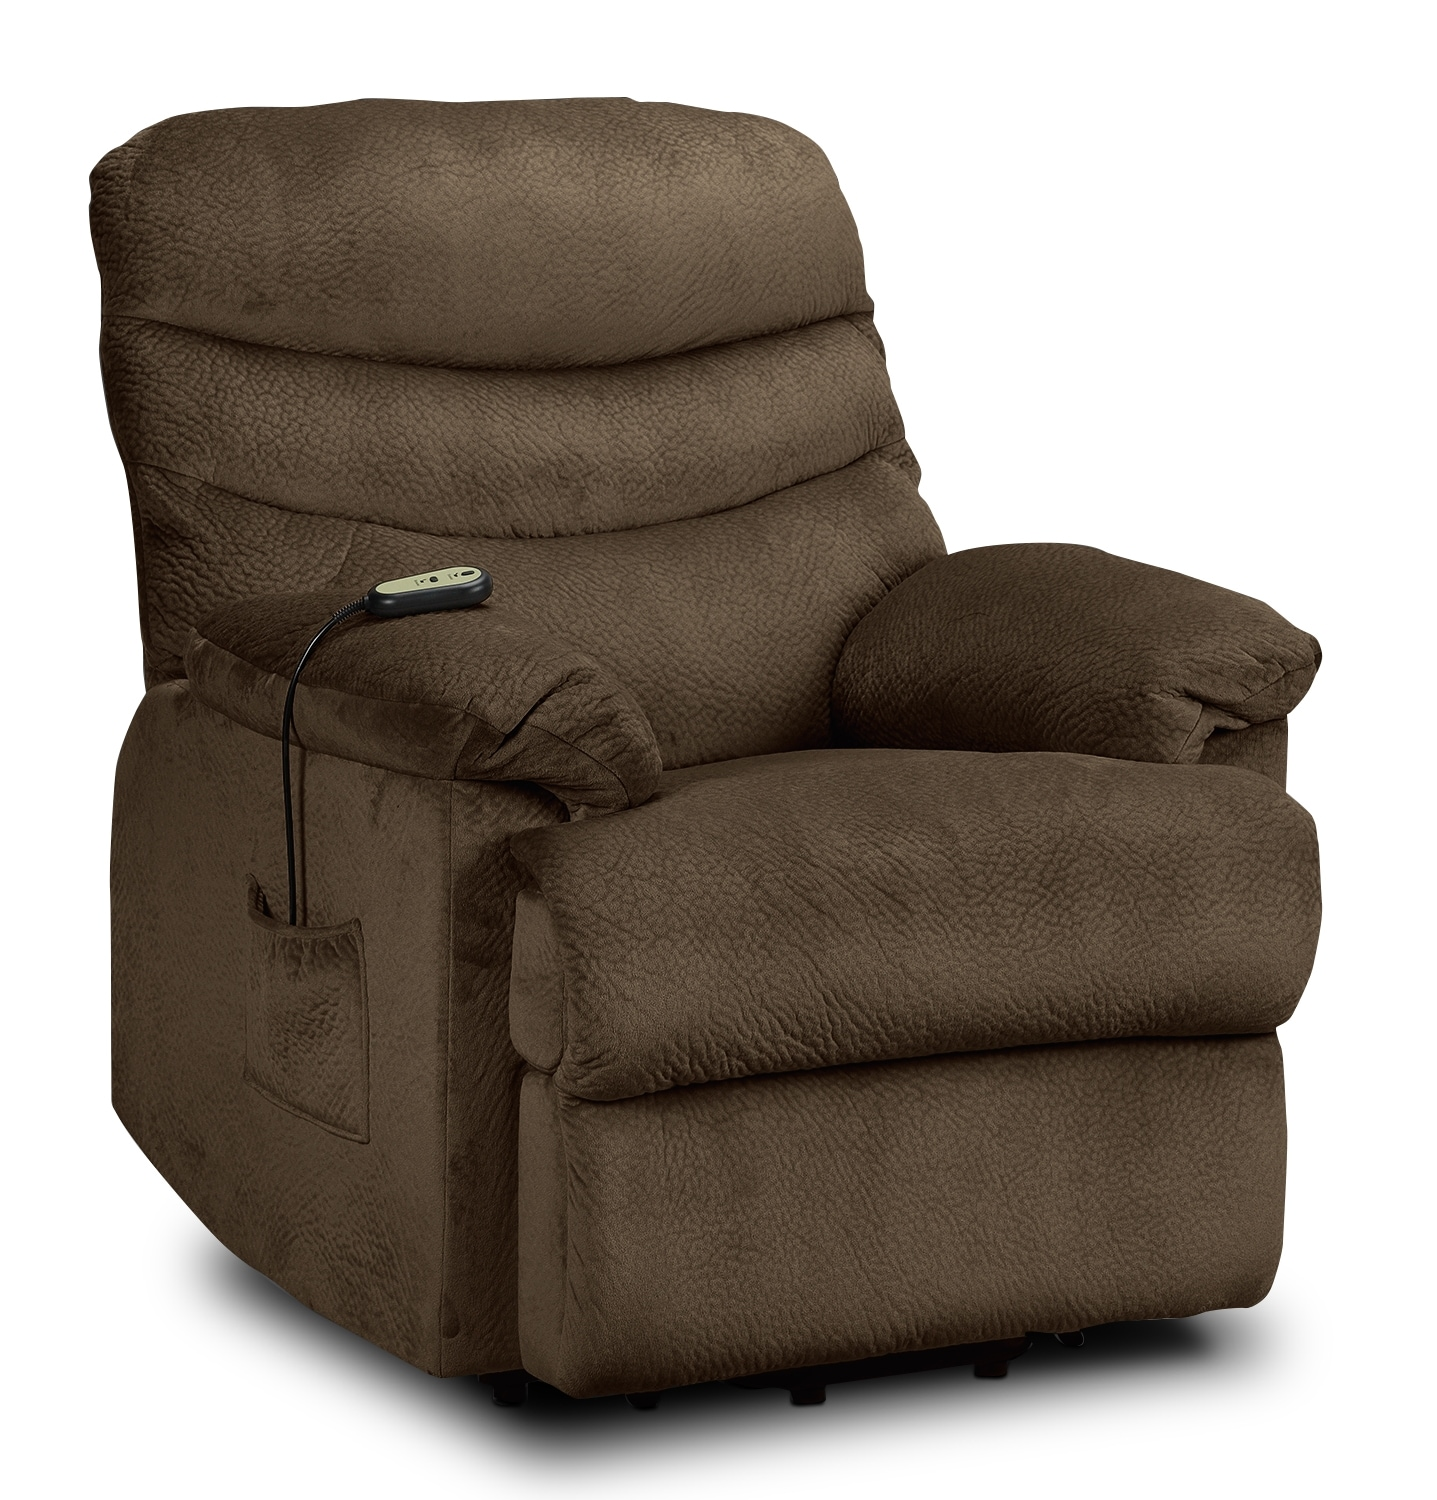 chair and lift power recliner Find maximum comfort with a power reclining sofa consider a lift recliner lift chairs are designed to give you an easy boost when getting up or sitting down.